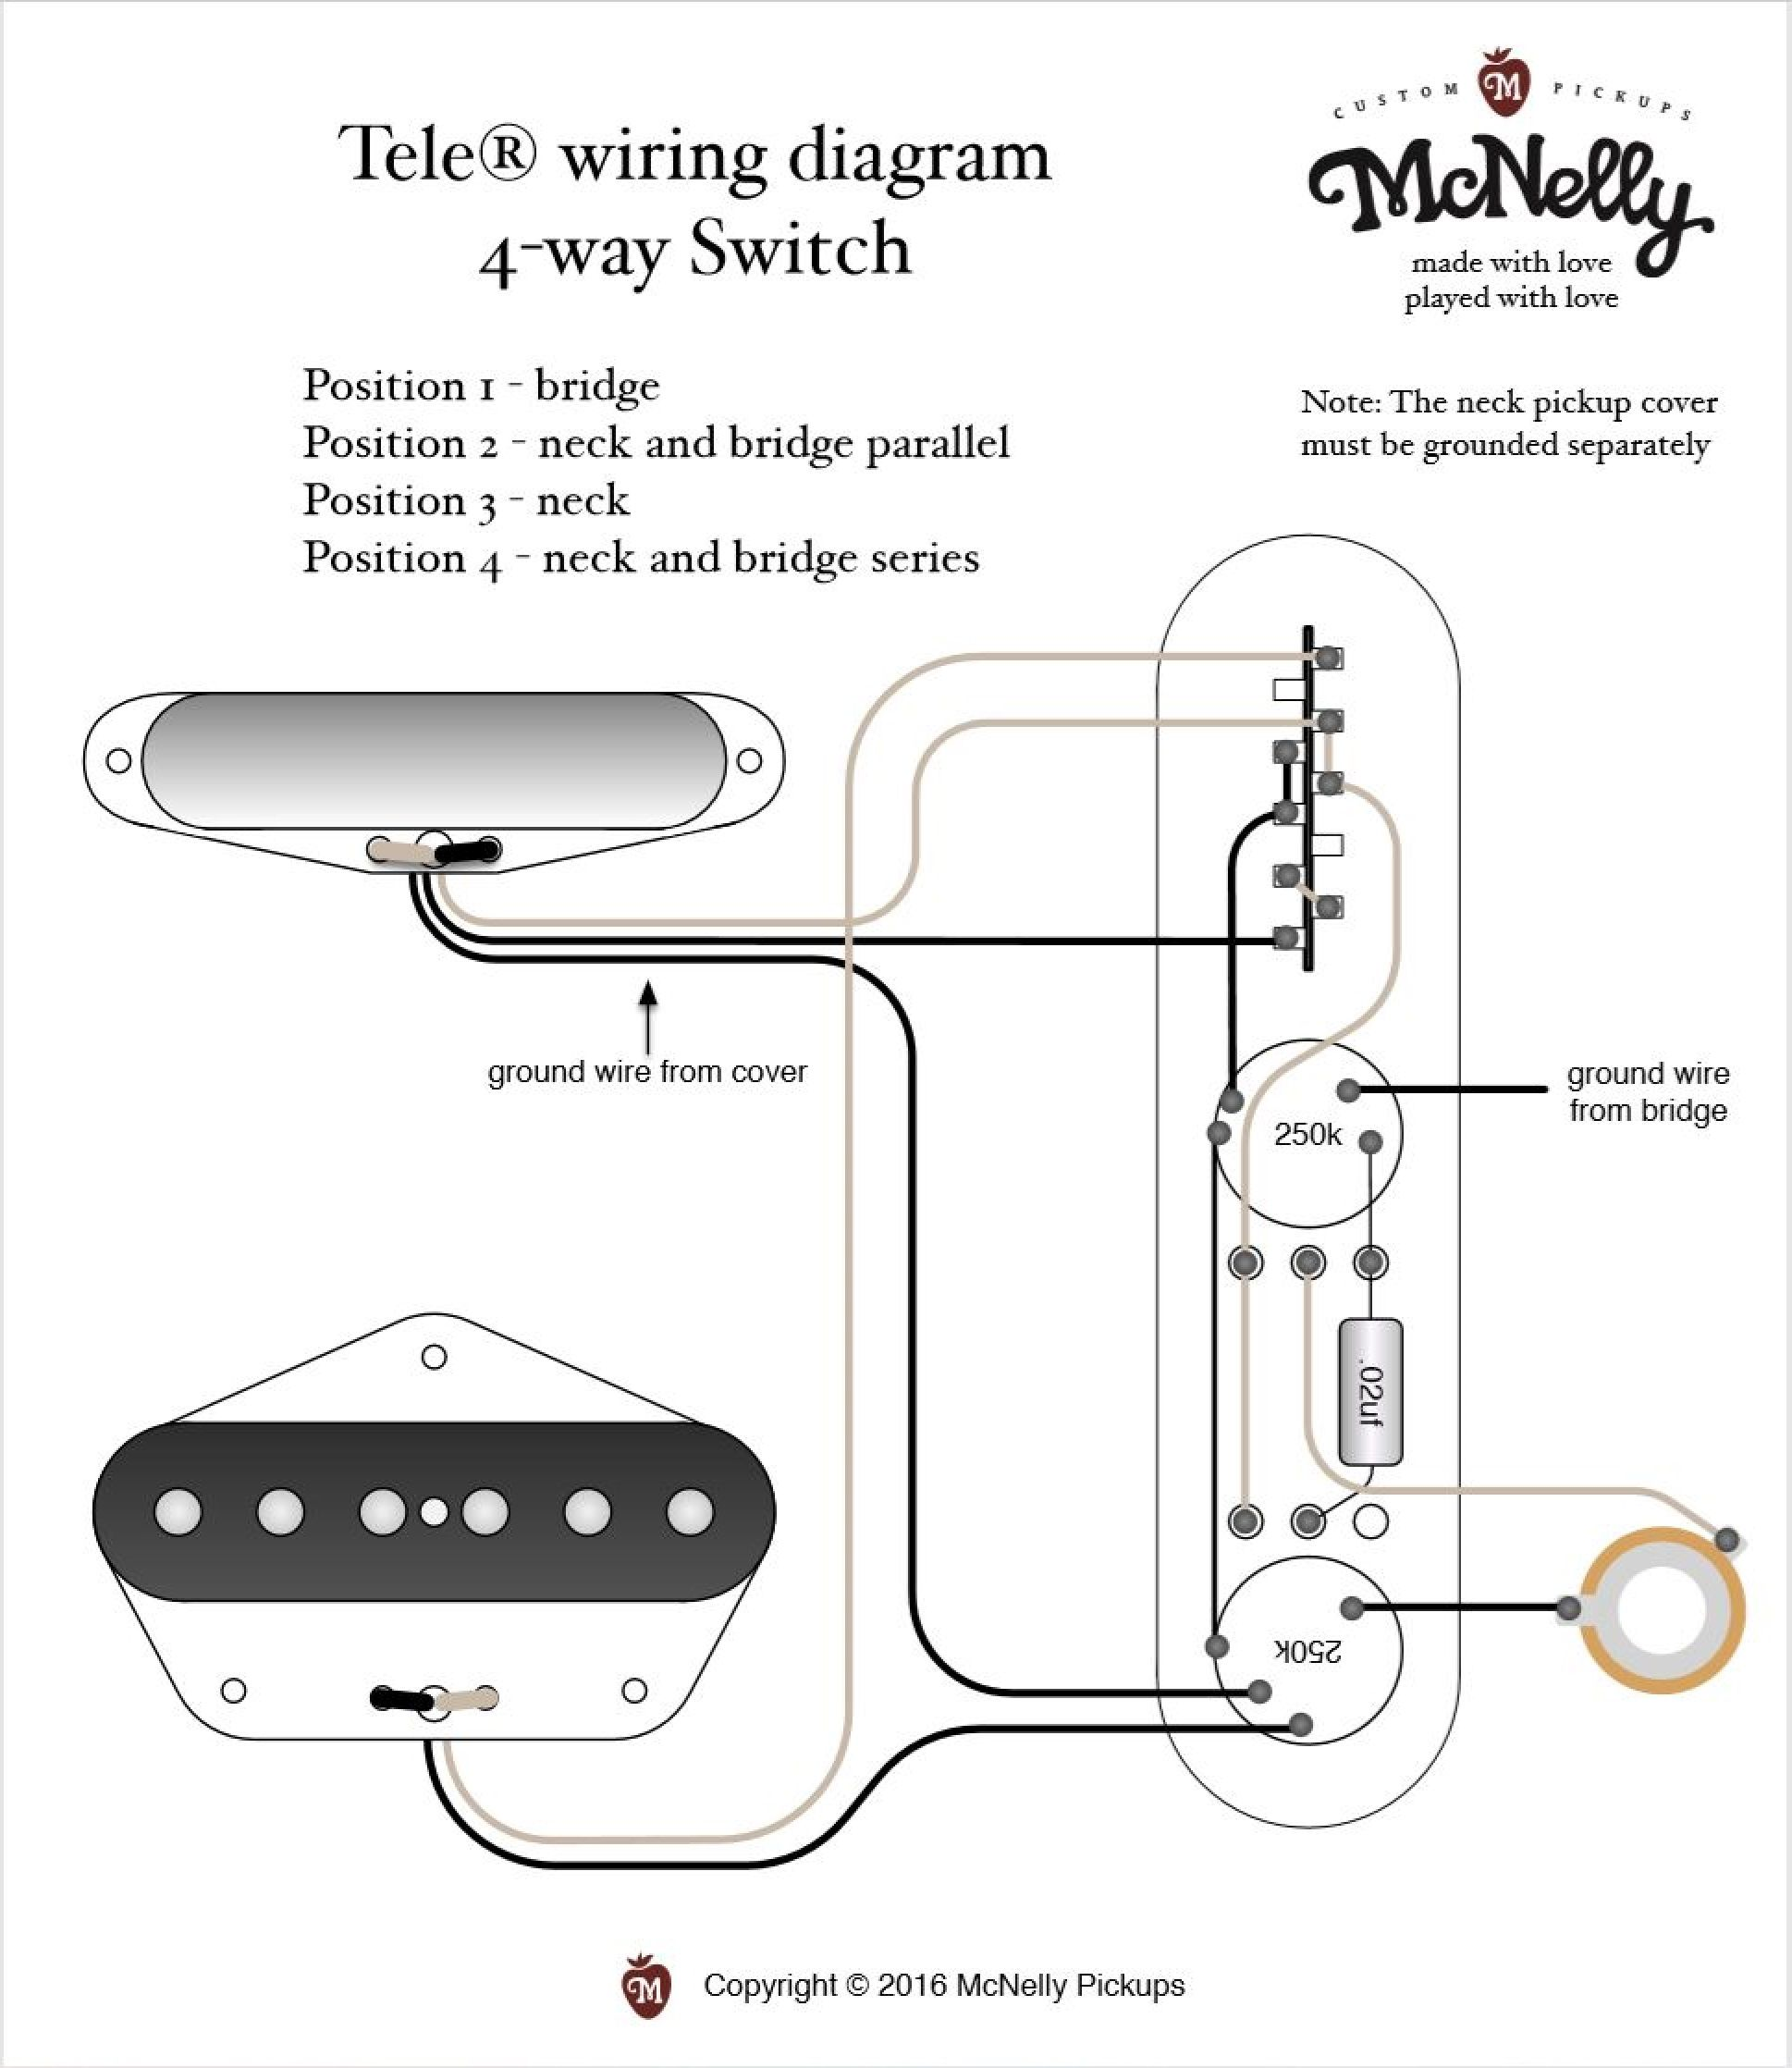 McNelly Pickups: Tele® wiring diagram 4-way Switch